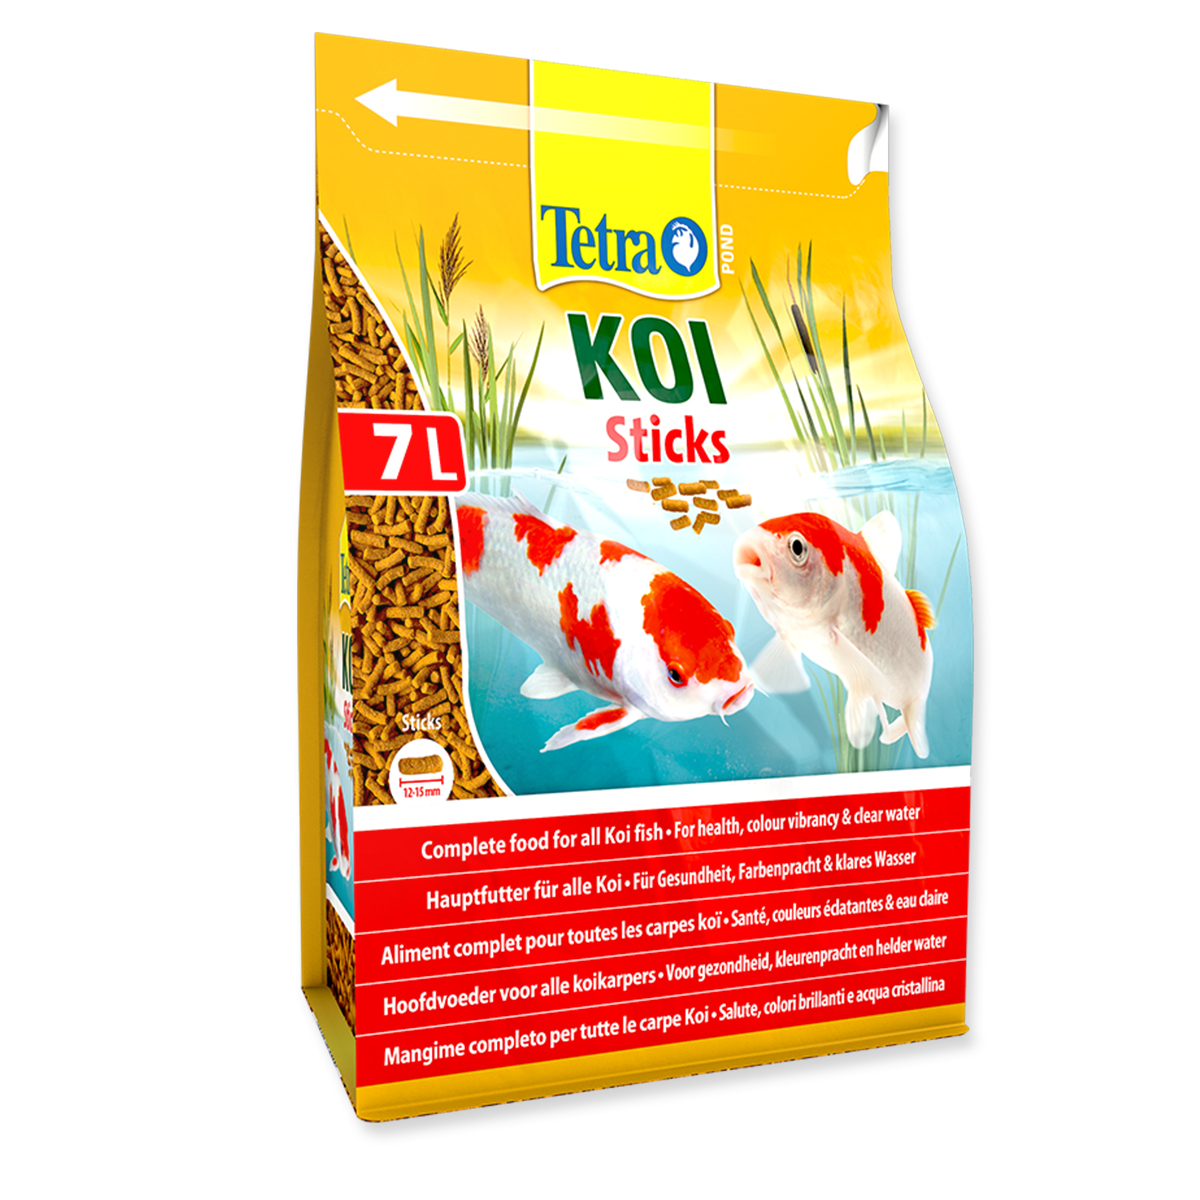 Tetra koi sticks 7 litre 1100g for Koi pond sticks